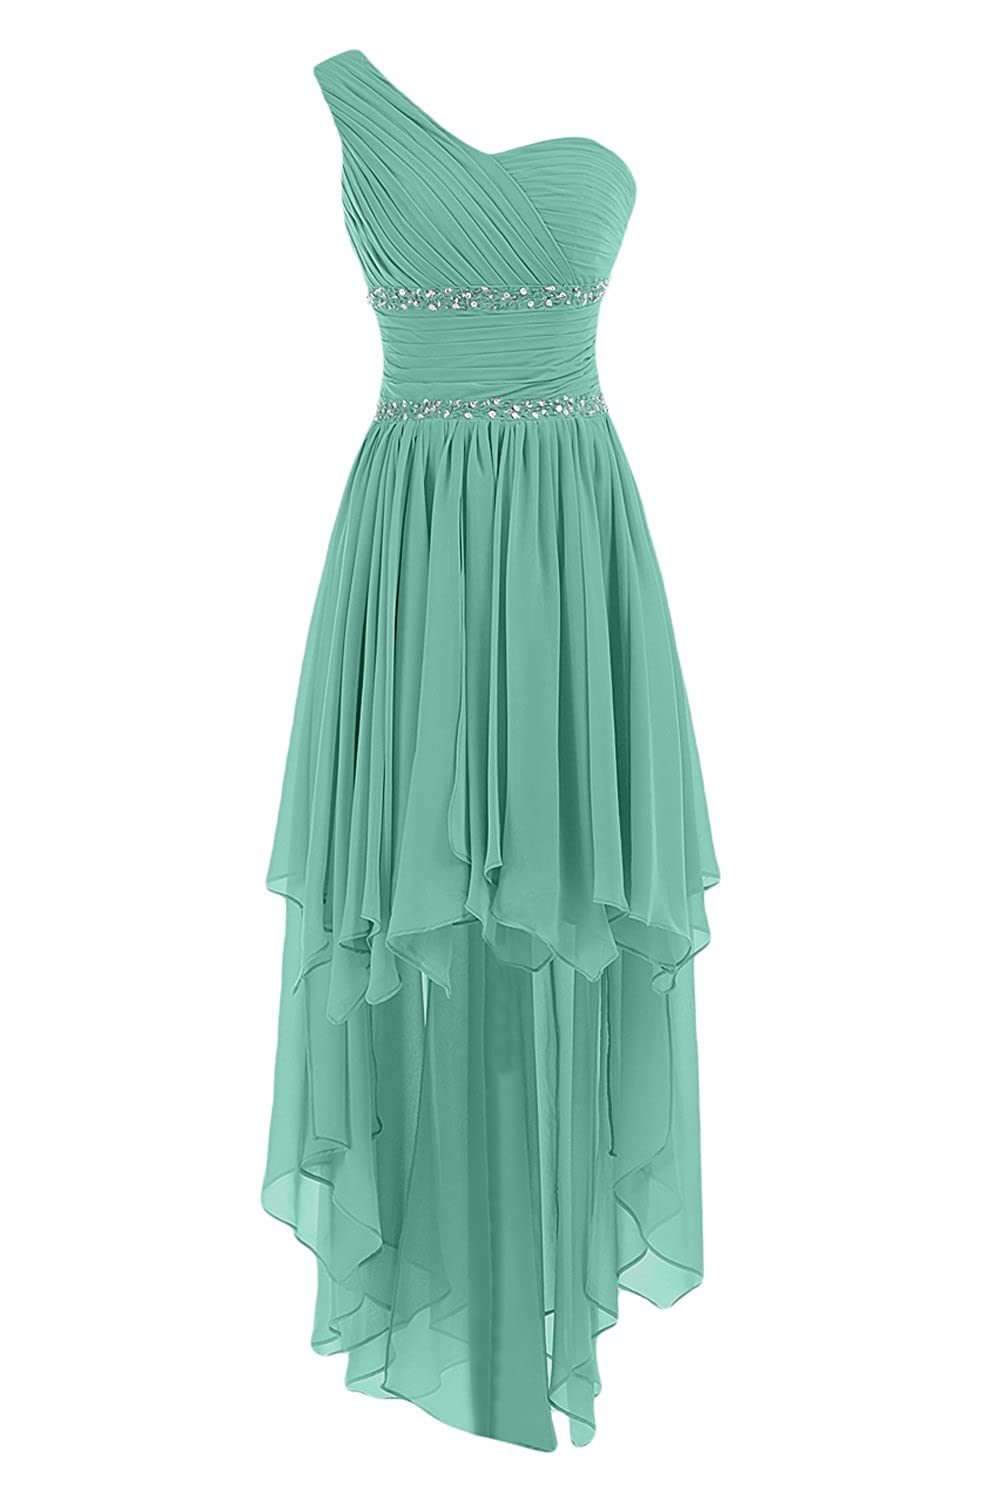 Sunvary One Shoulder High Low Chiffon Bridesmaid Dresses Homecoming Gowns for Juniors